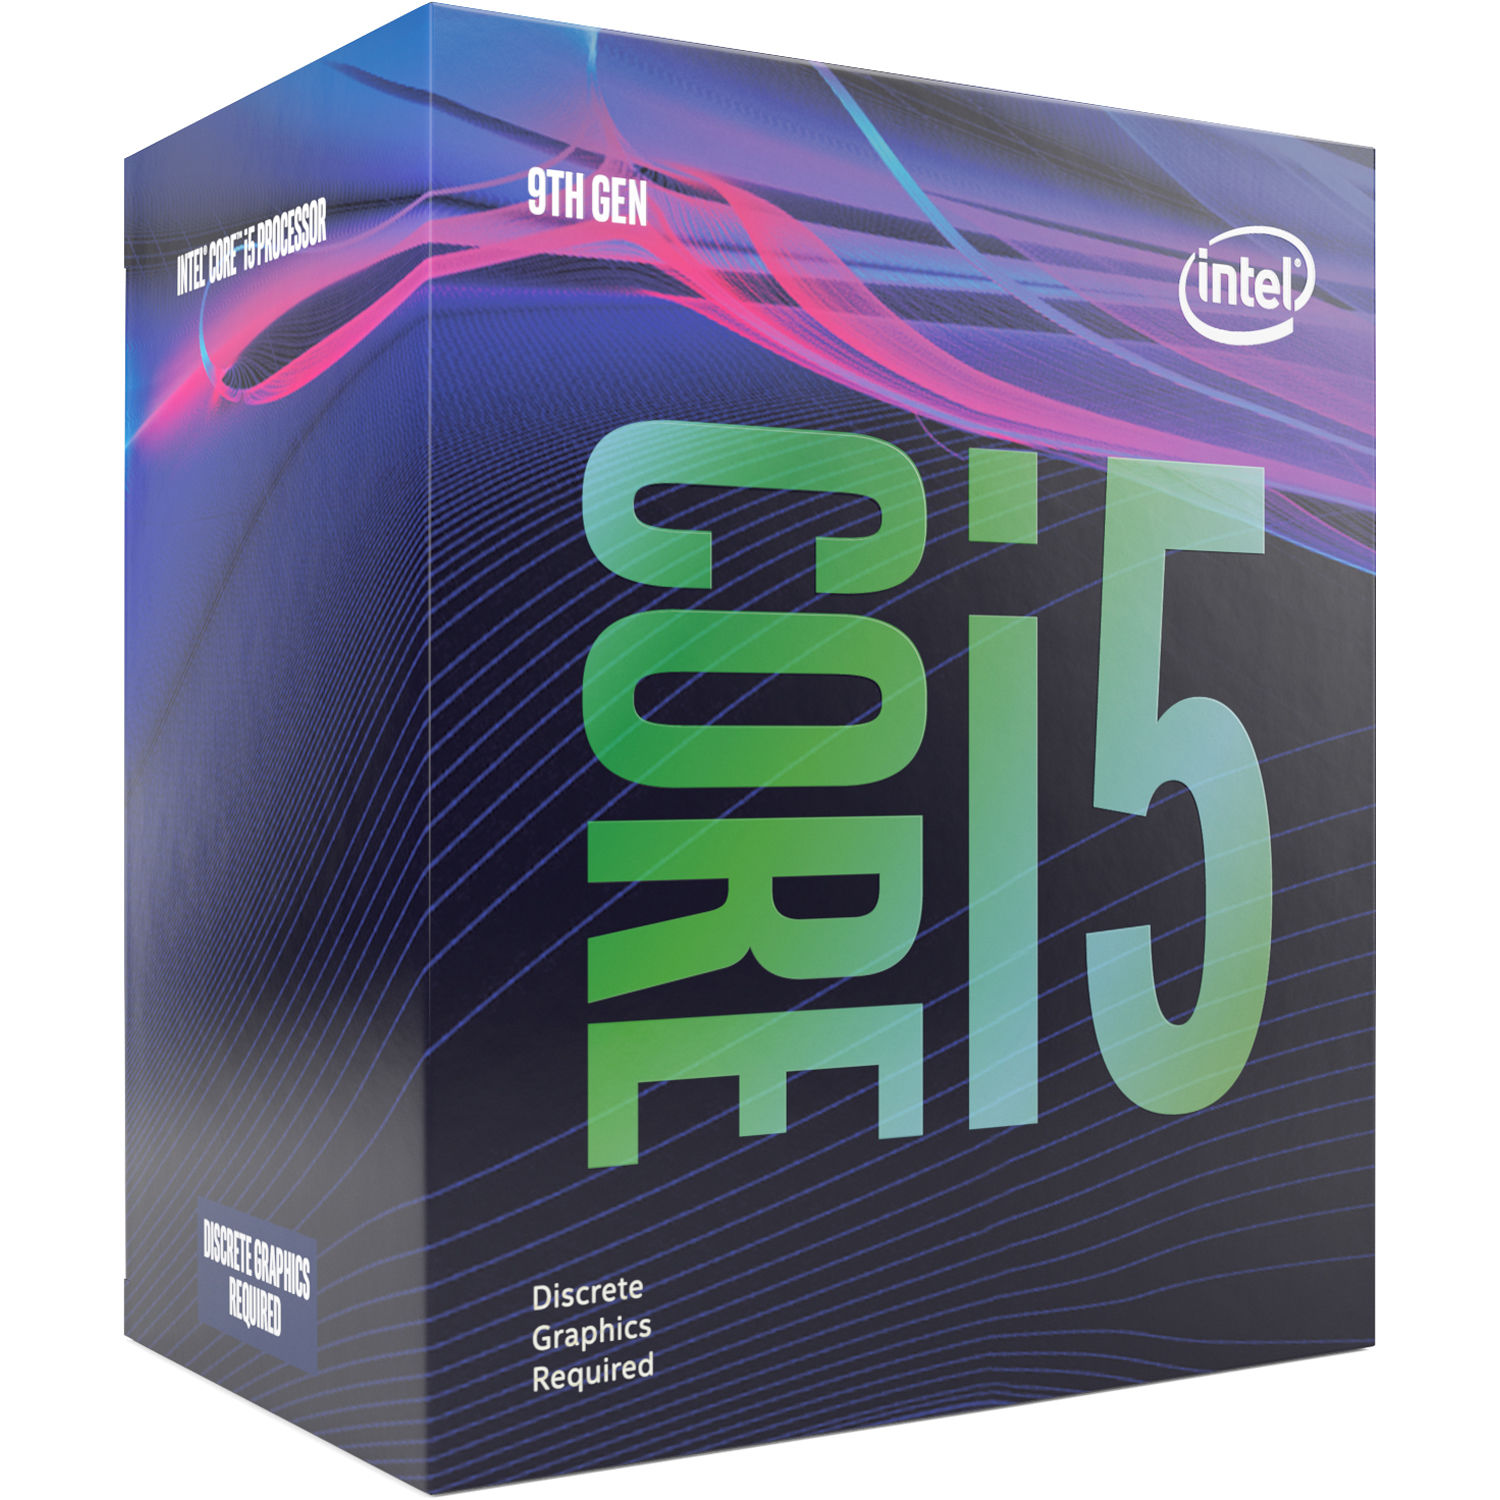 INTEL CPU Core i5-9400F BX80684I59400F 4.10GHz